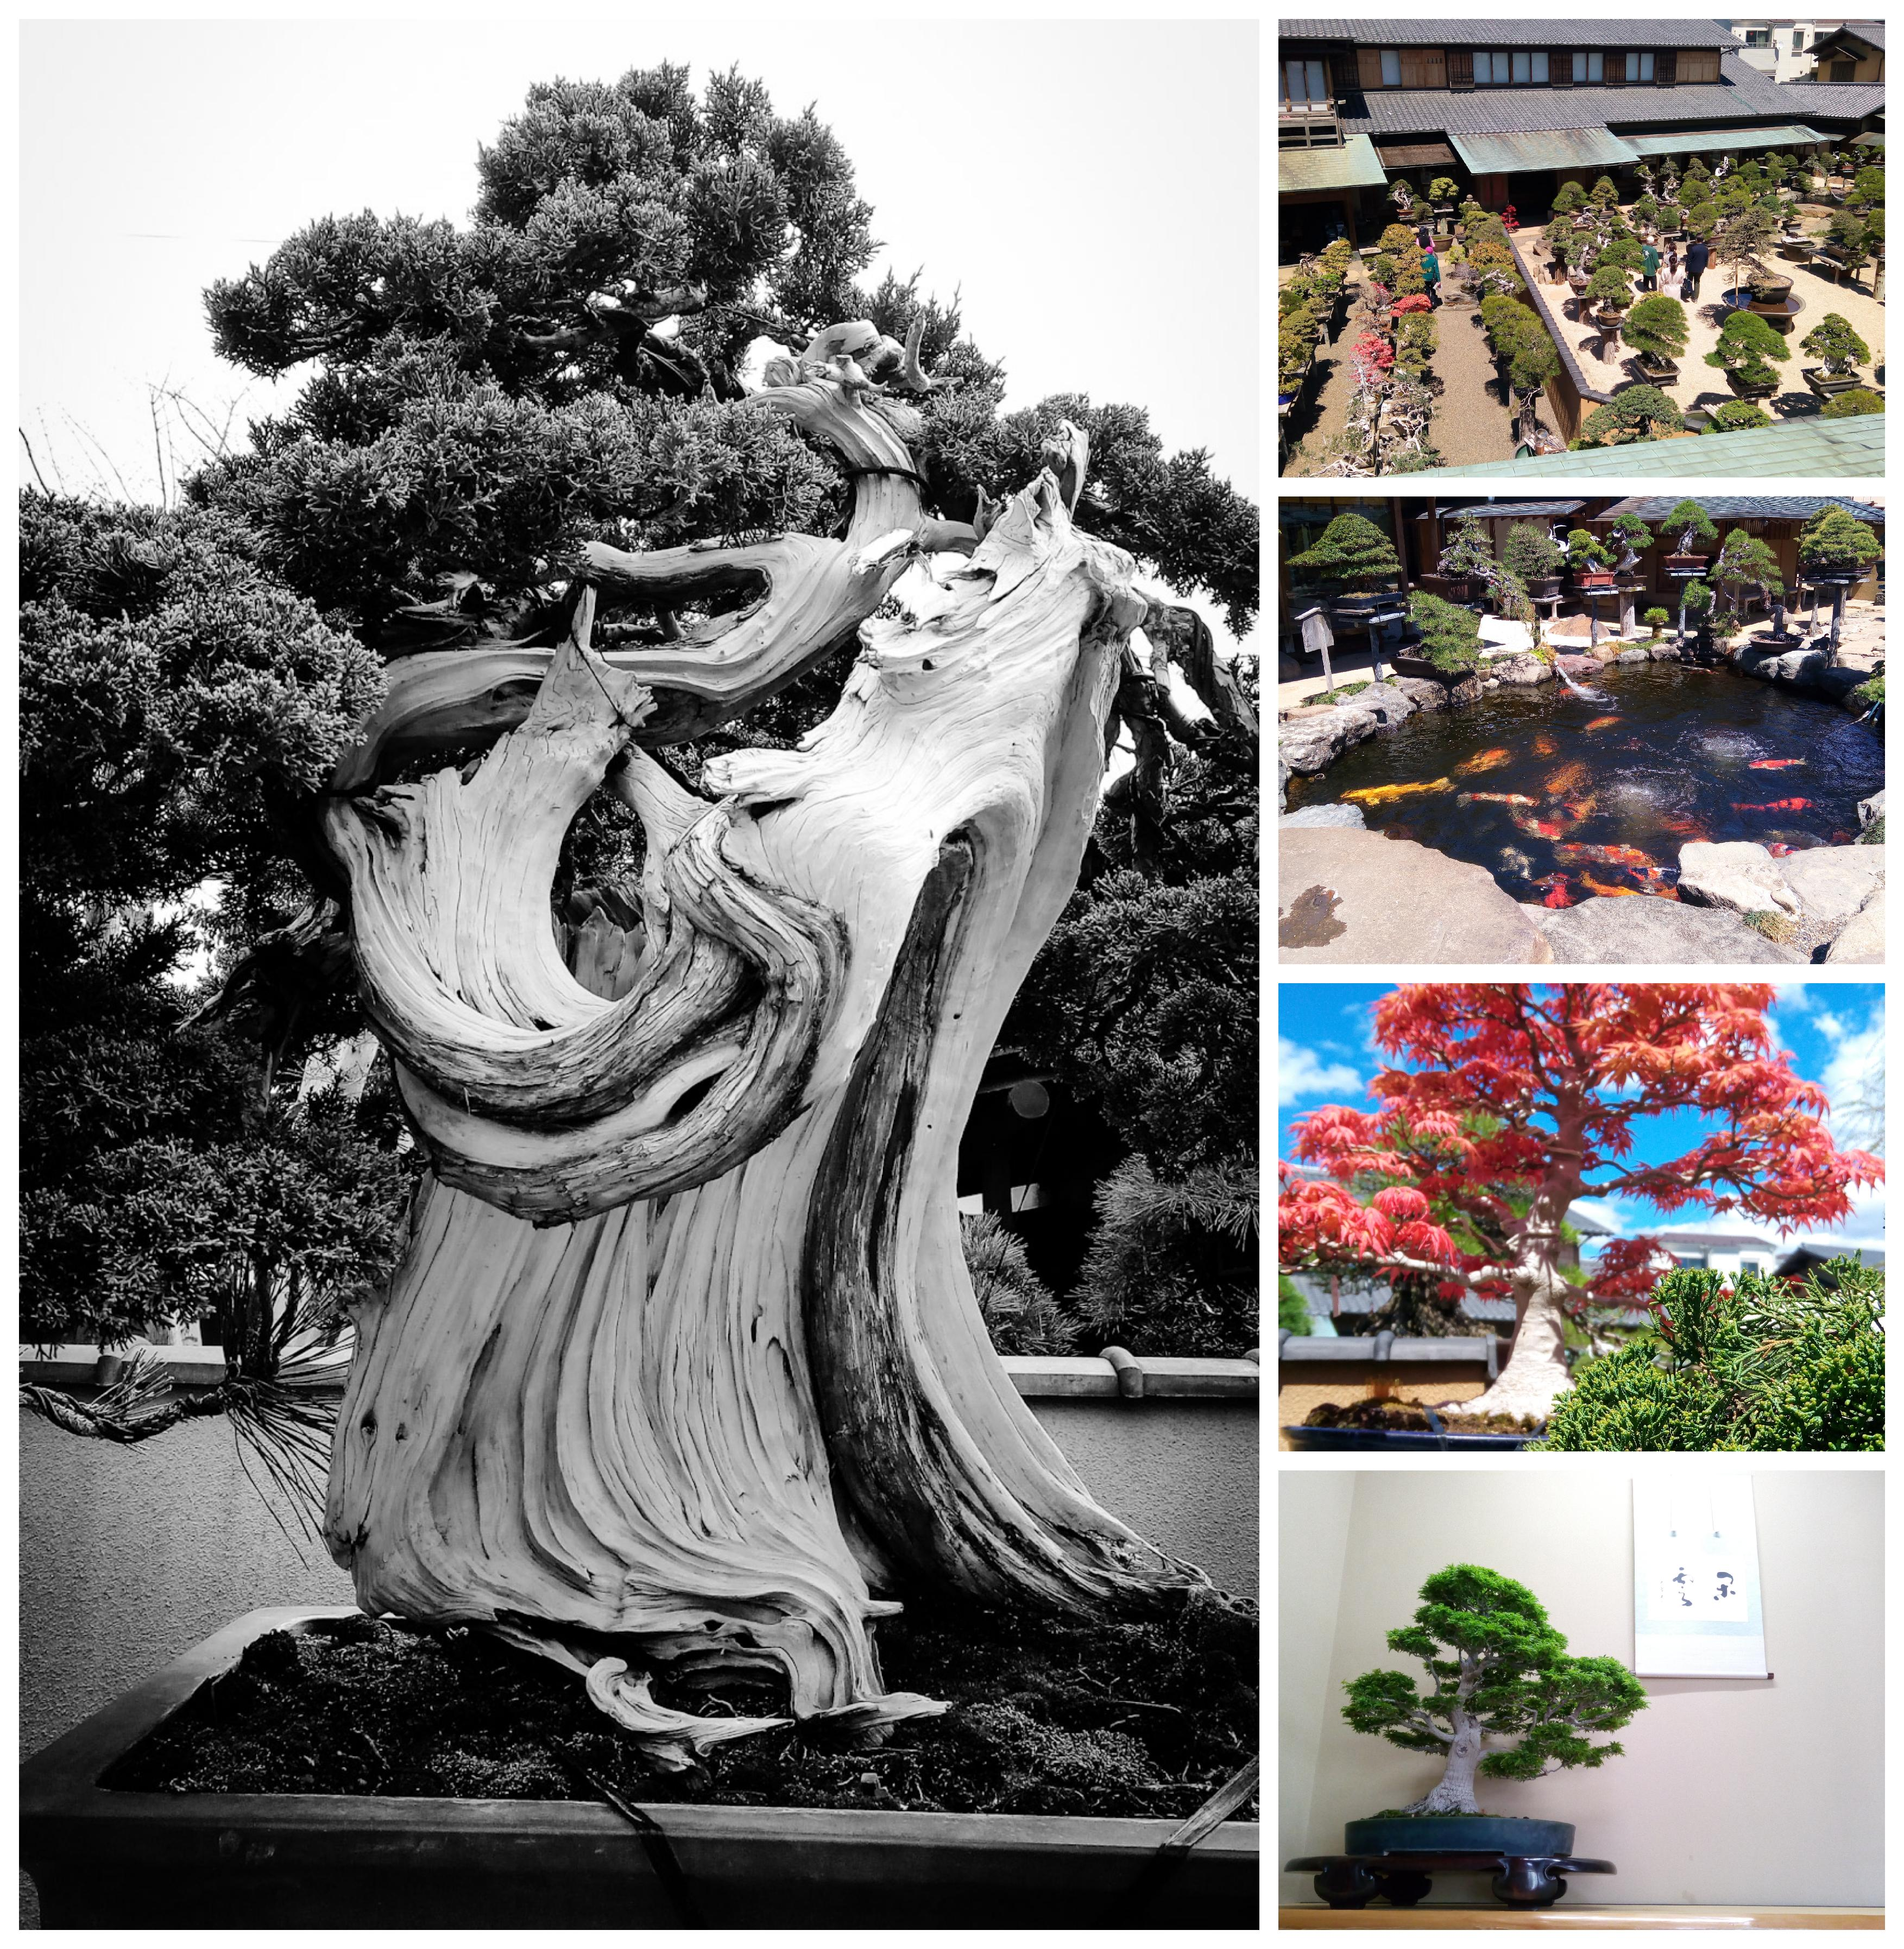 Urban Photos - Edogawa City, Tokyo, Japan. 'Shunka-en Bonsai Museum.' Funded by Bonsai Master Kunio Kobayashi (four times recipient of the Prime Ministers Award - the most prestigious award in Japan), the Museum is delight to the eyes - a beautiful bonsai garden, with a forest of stunning bonsai tress, and even a tranquil koi carp pond. The staff are more than happy to guide you through the garden and facilities, passing on amazing information about the ancient trees and the craft. They also run a bonsai school on site, with apprentices coming from all over the world. sketchbookexplorer.com @davidasutton @sketchbookexplorer Facebook.com/davidanthonysutton #japan #tokyo #edogawa #shunkaenbonsaimuseum #travel #travelblog #photography #cheeryblossom #cherryblossomseason